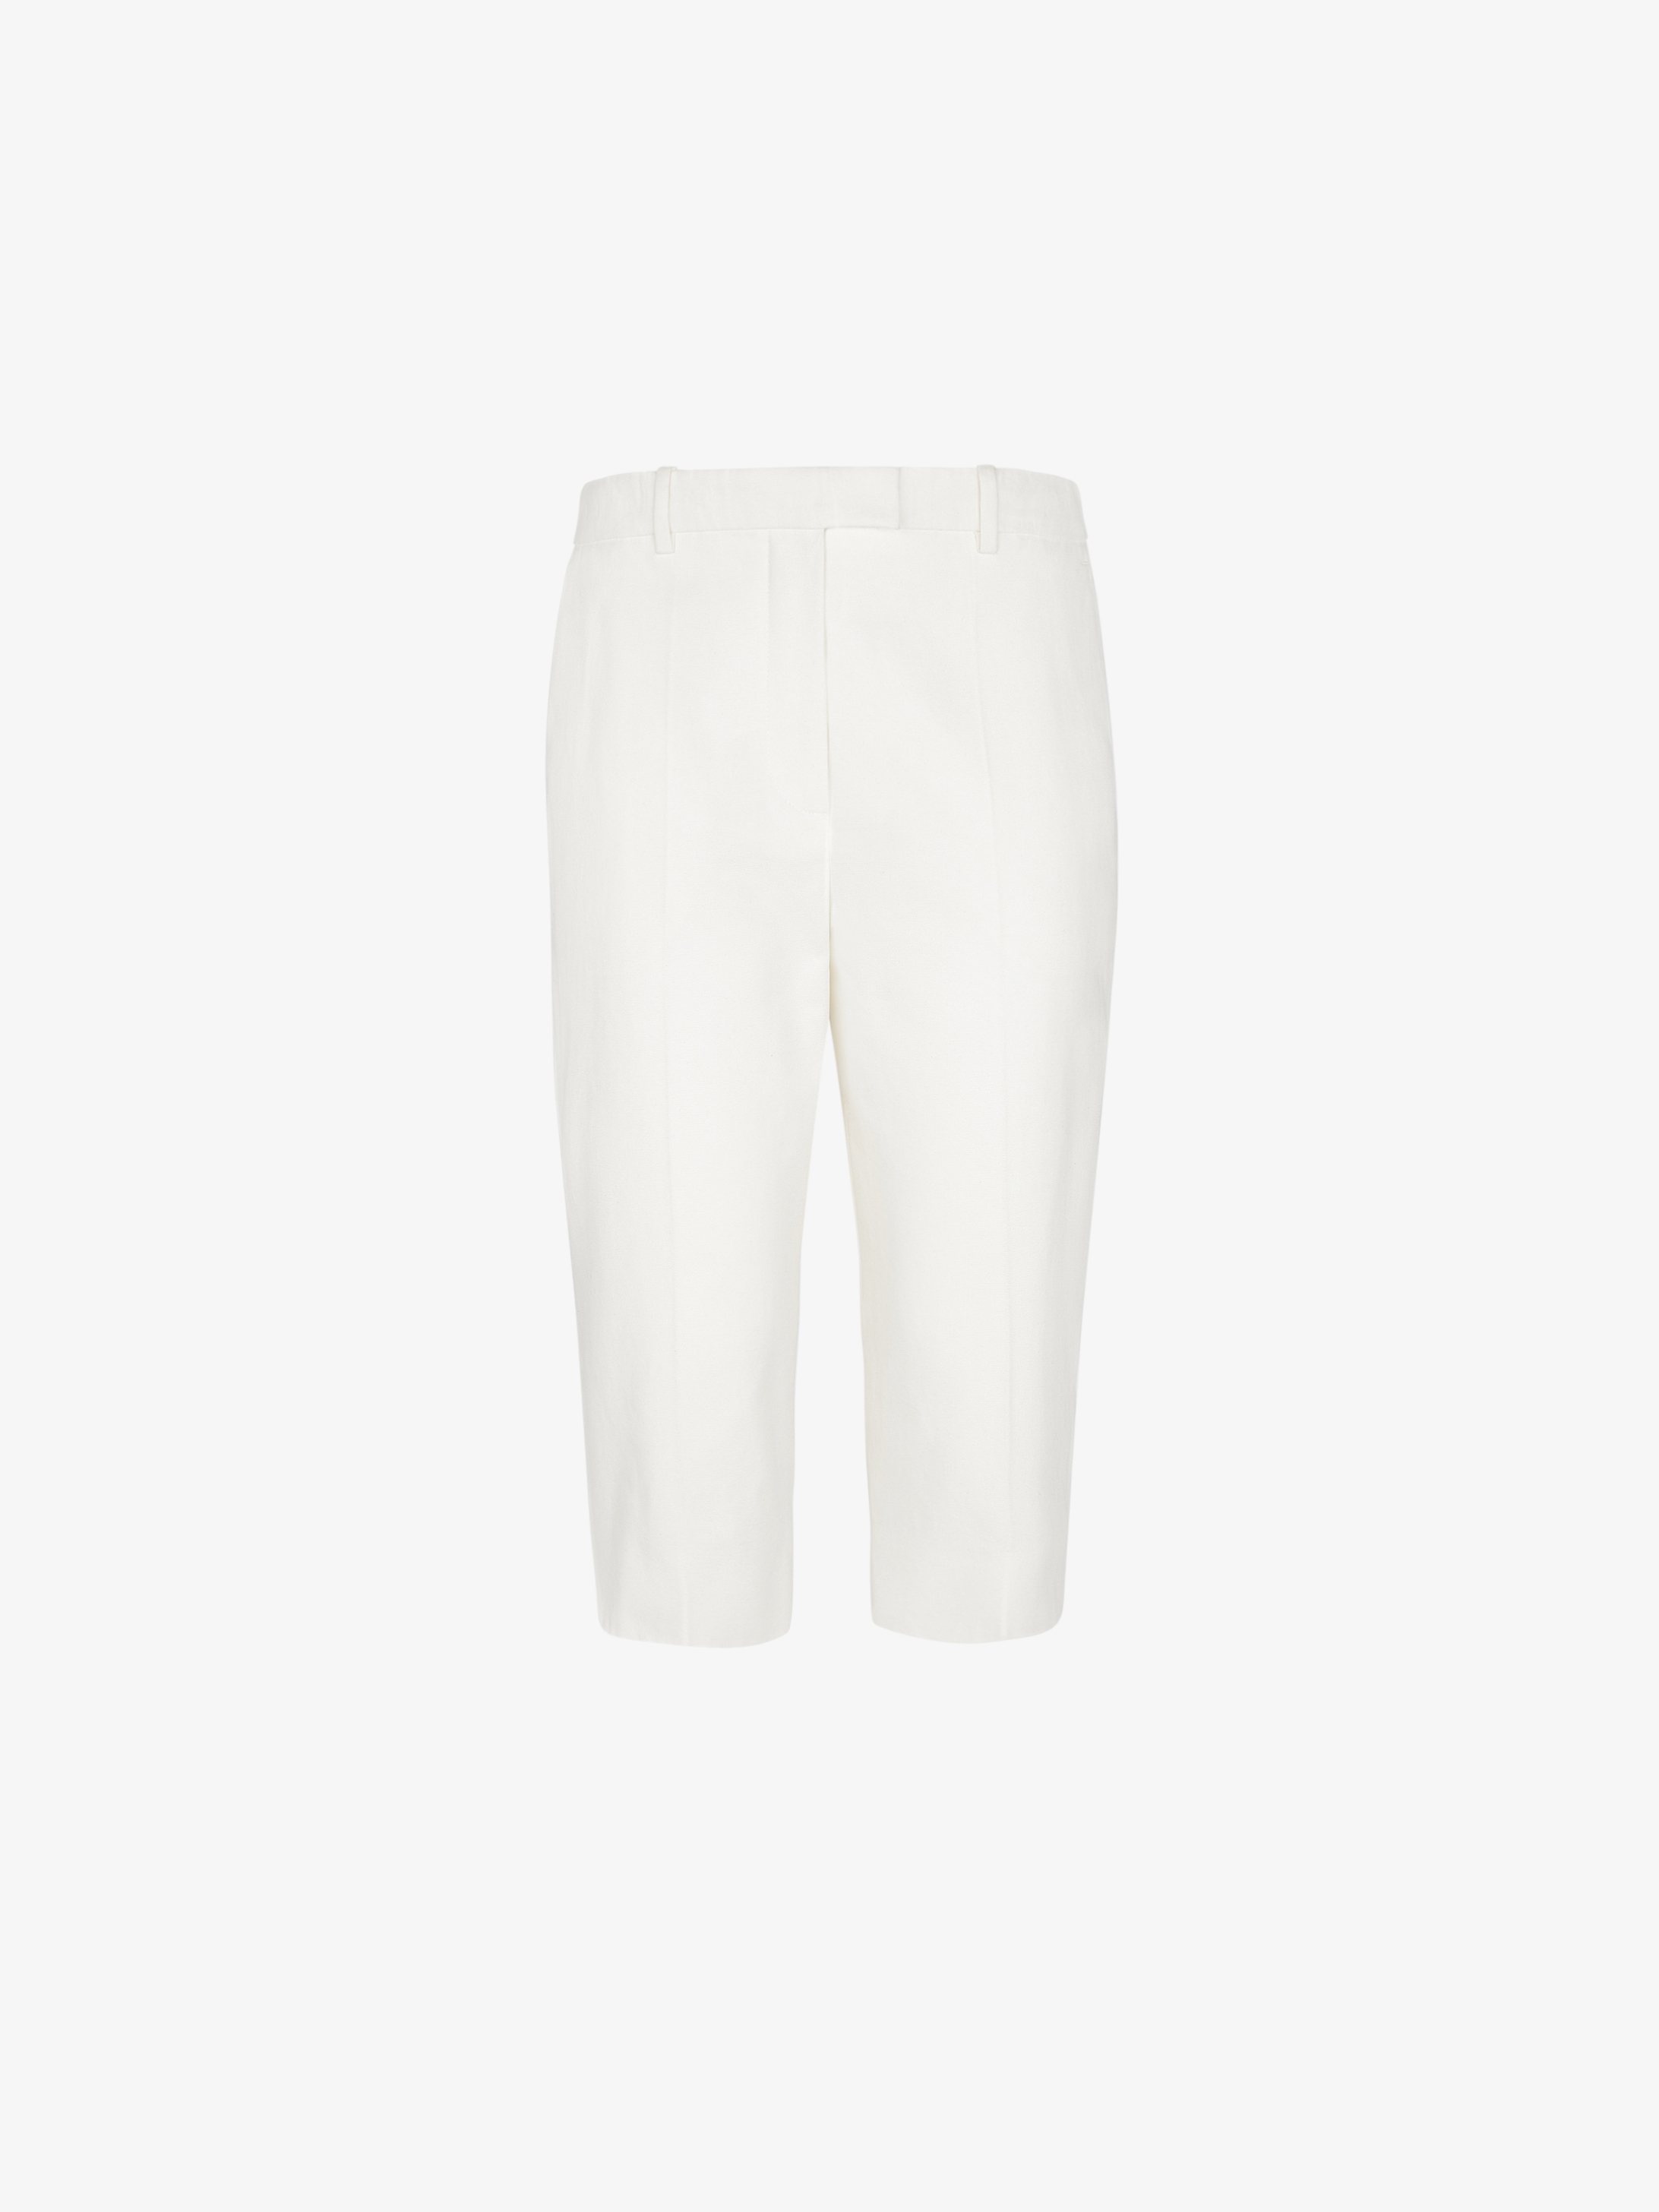 Straight short pants in cotton canvas